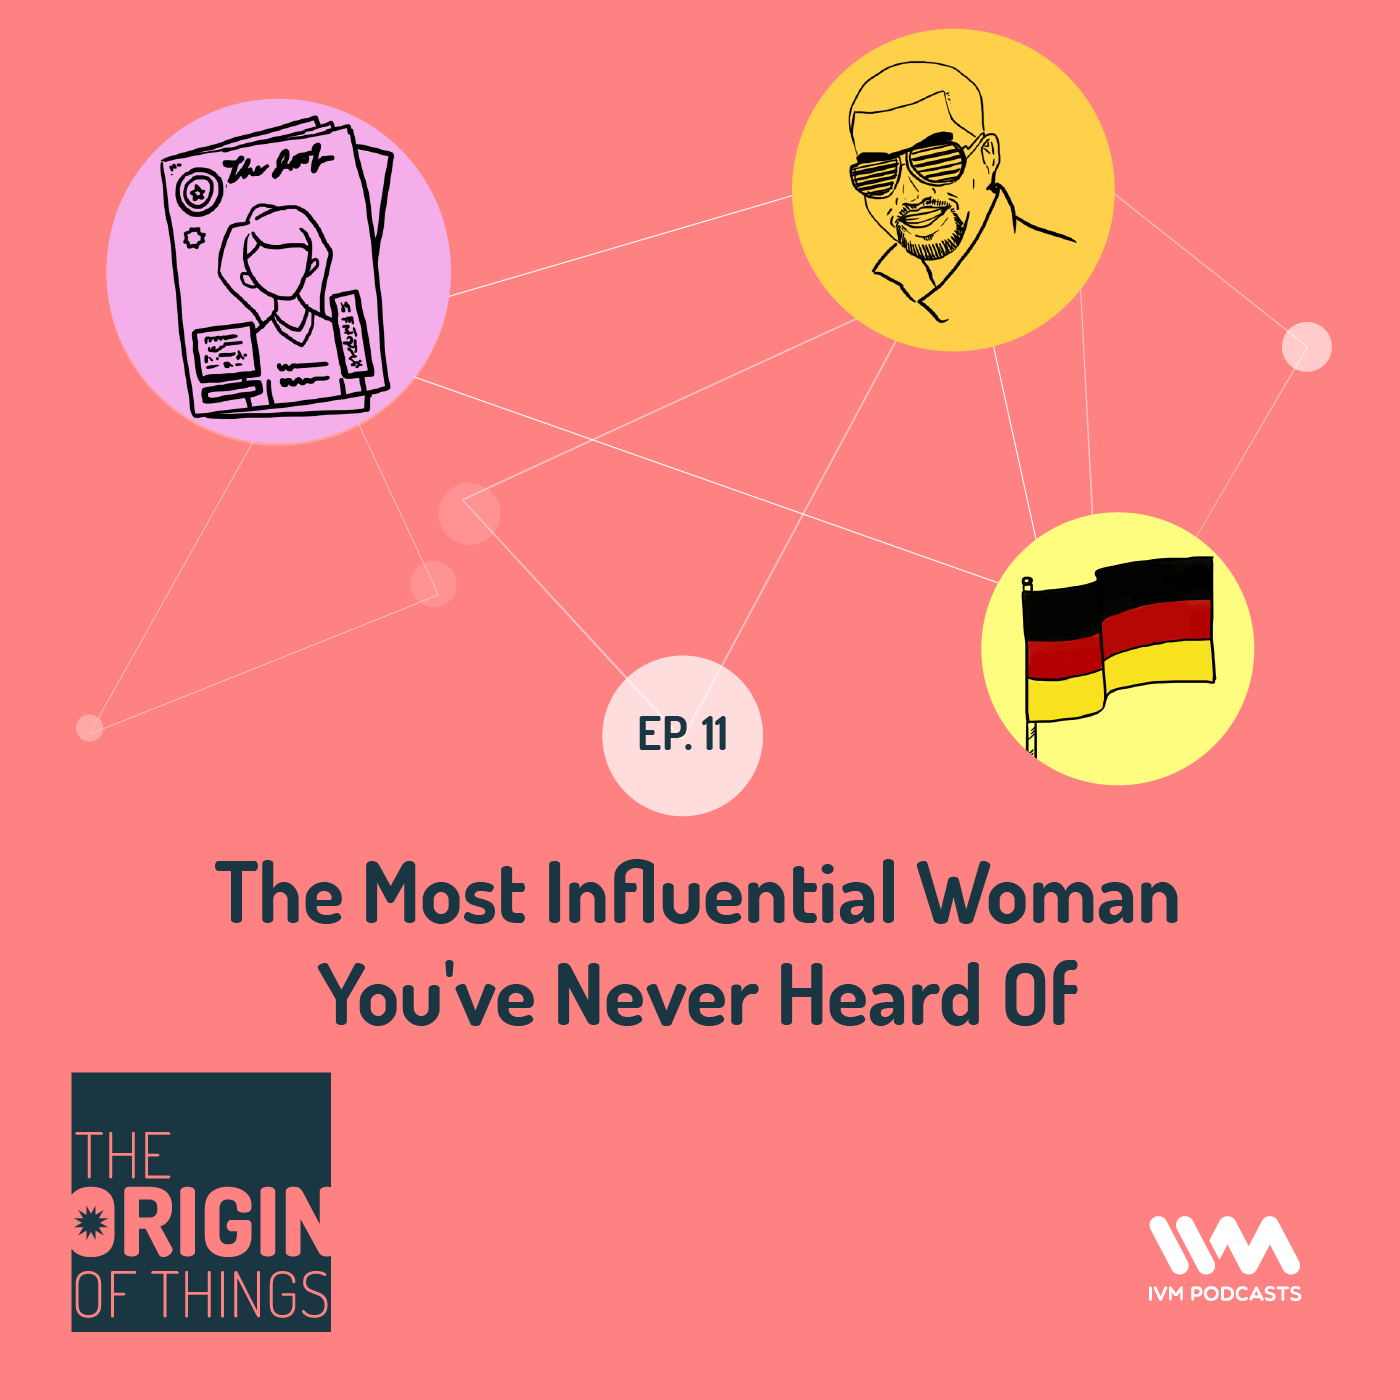 Ep. 11: The Most Influential Woman You've Never Heard Of